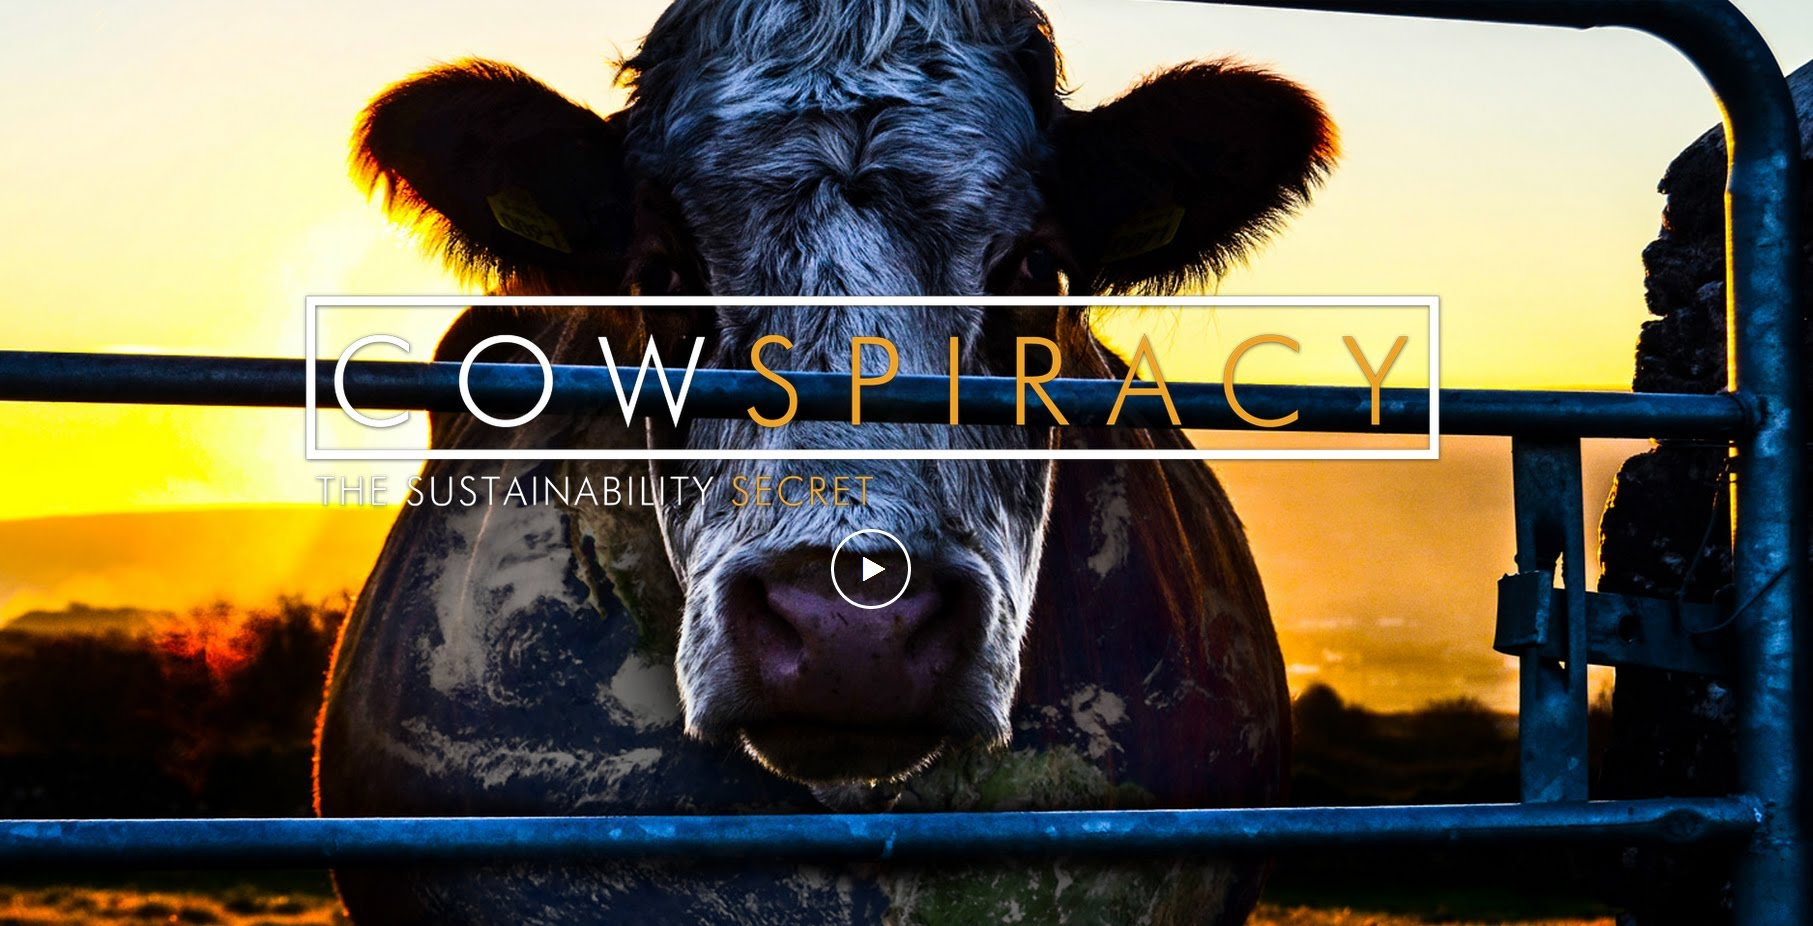 50 best documentaries on netflix cowspiracy mooves into